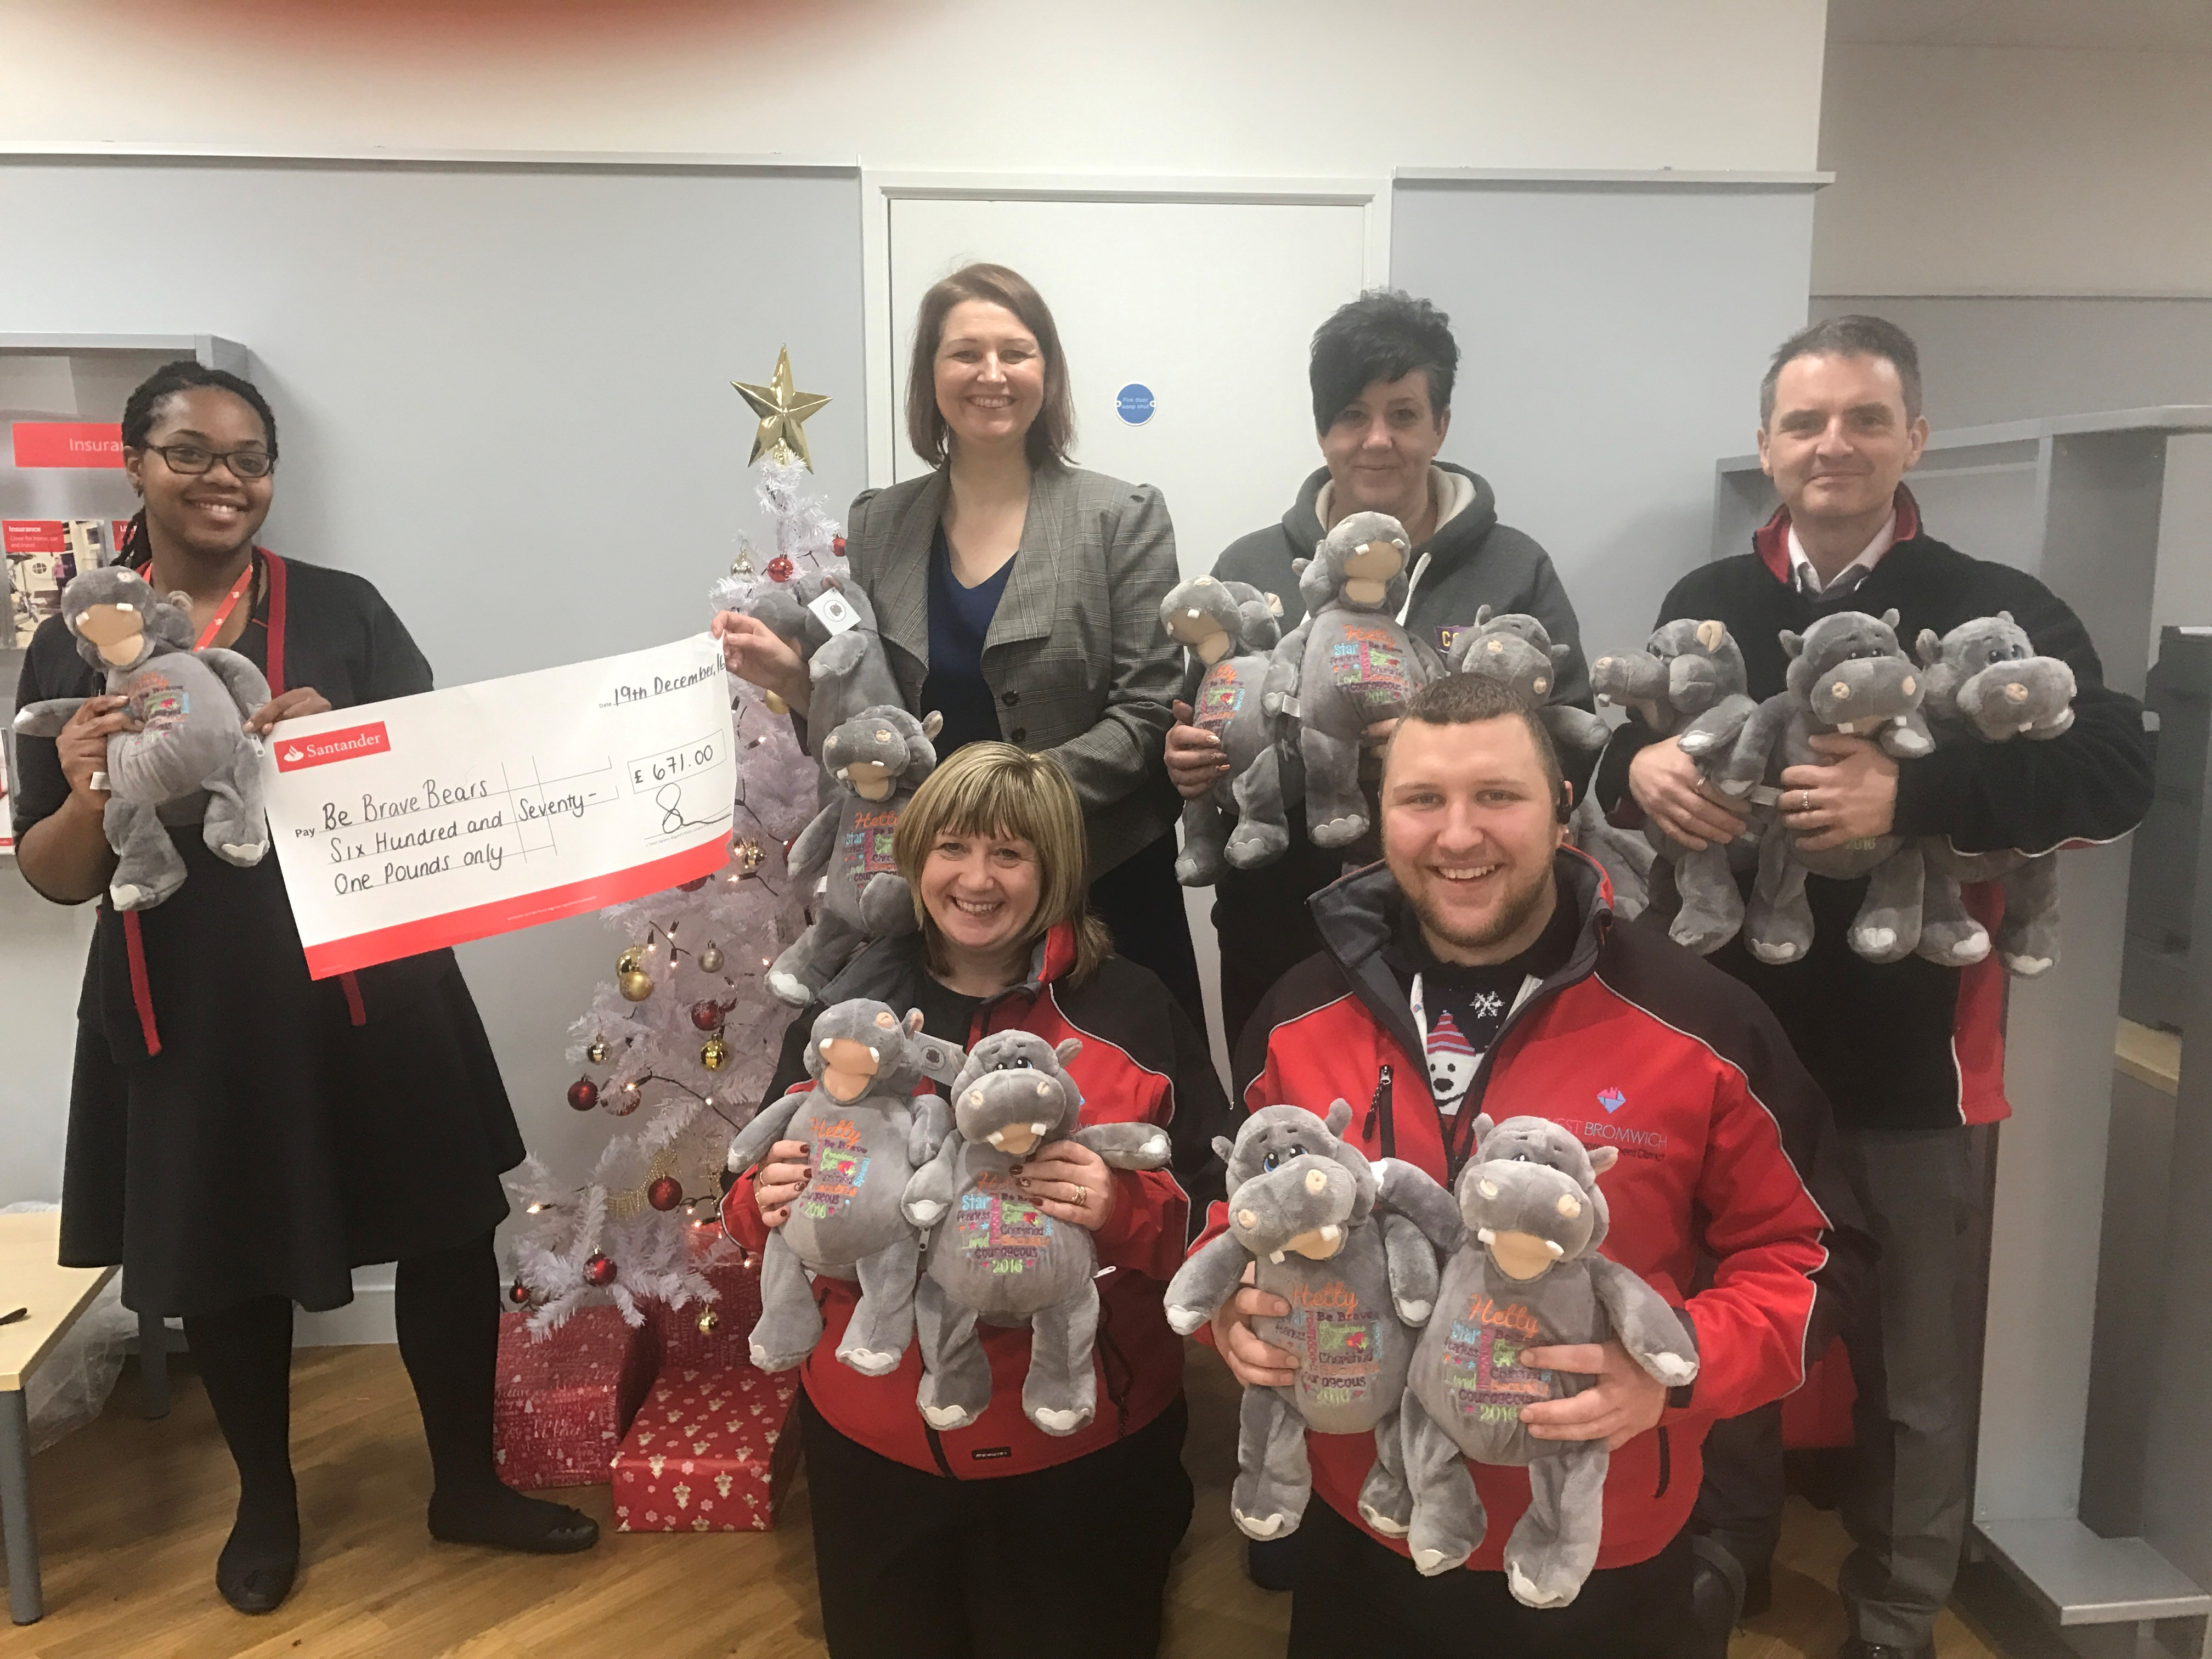 West Bromwich Town BID working with Be Brave Bears charity